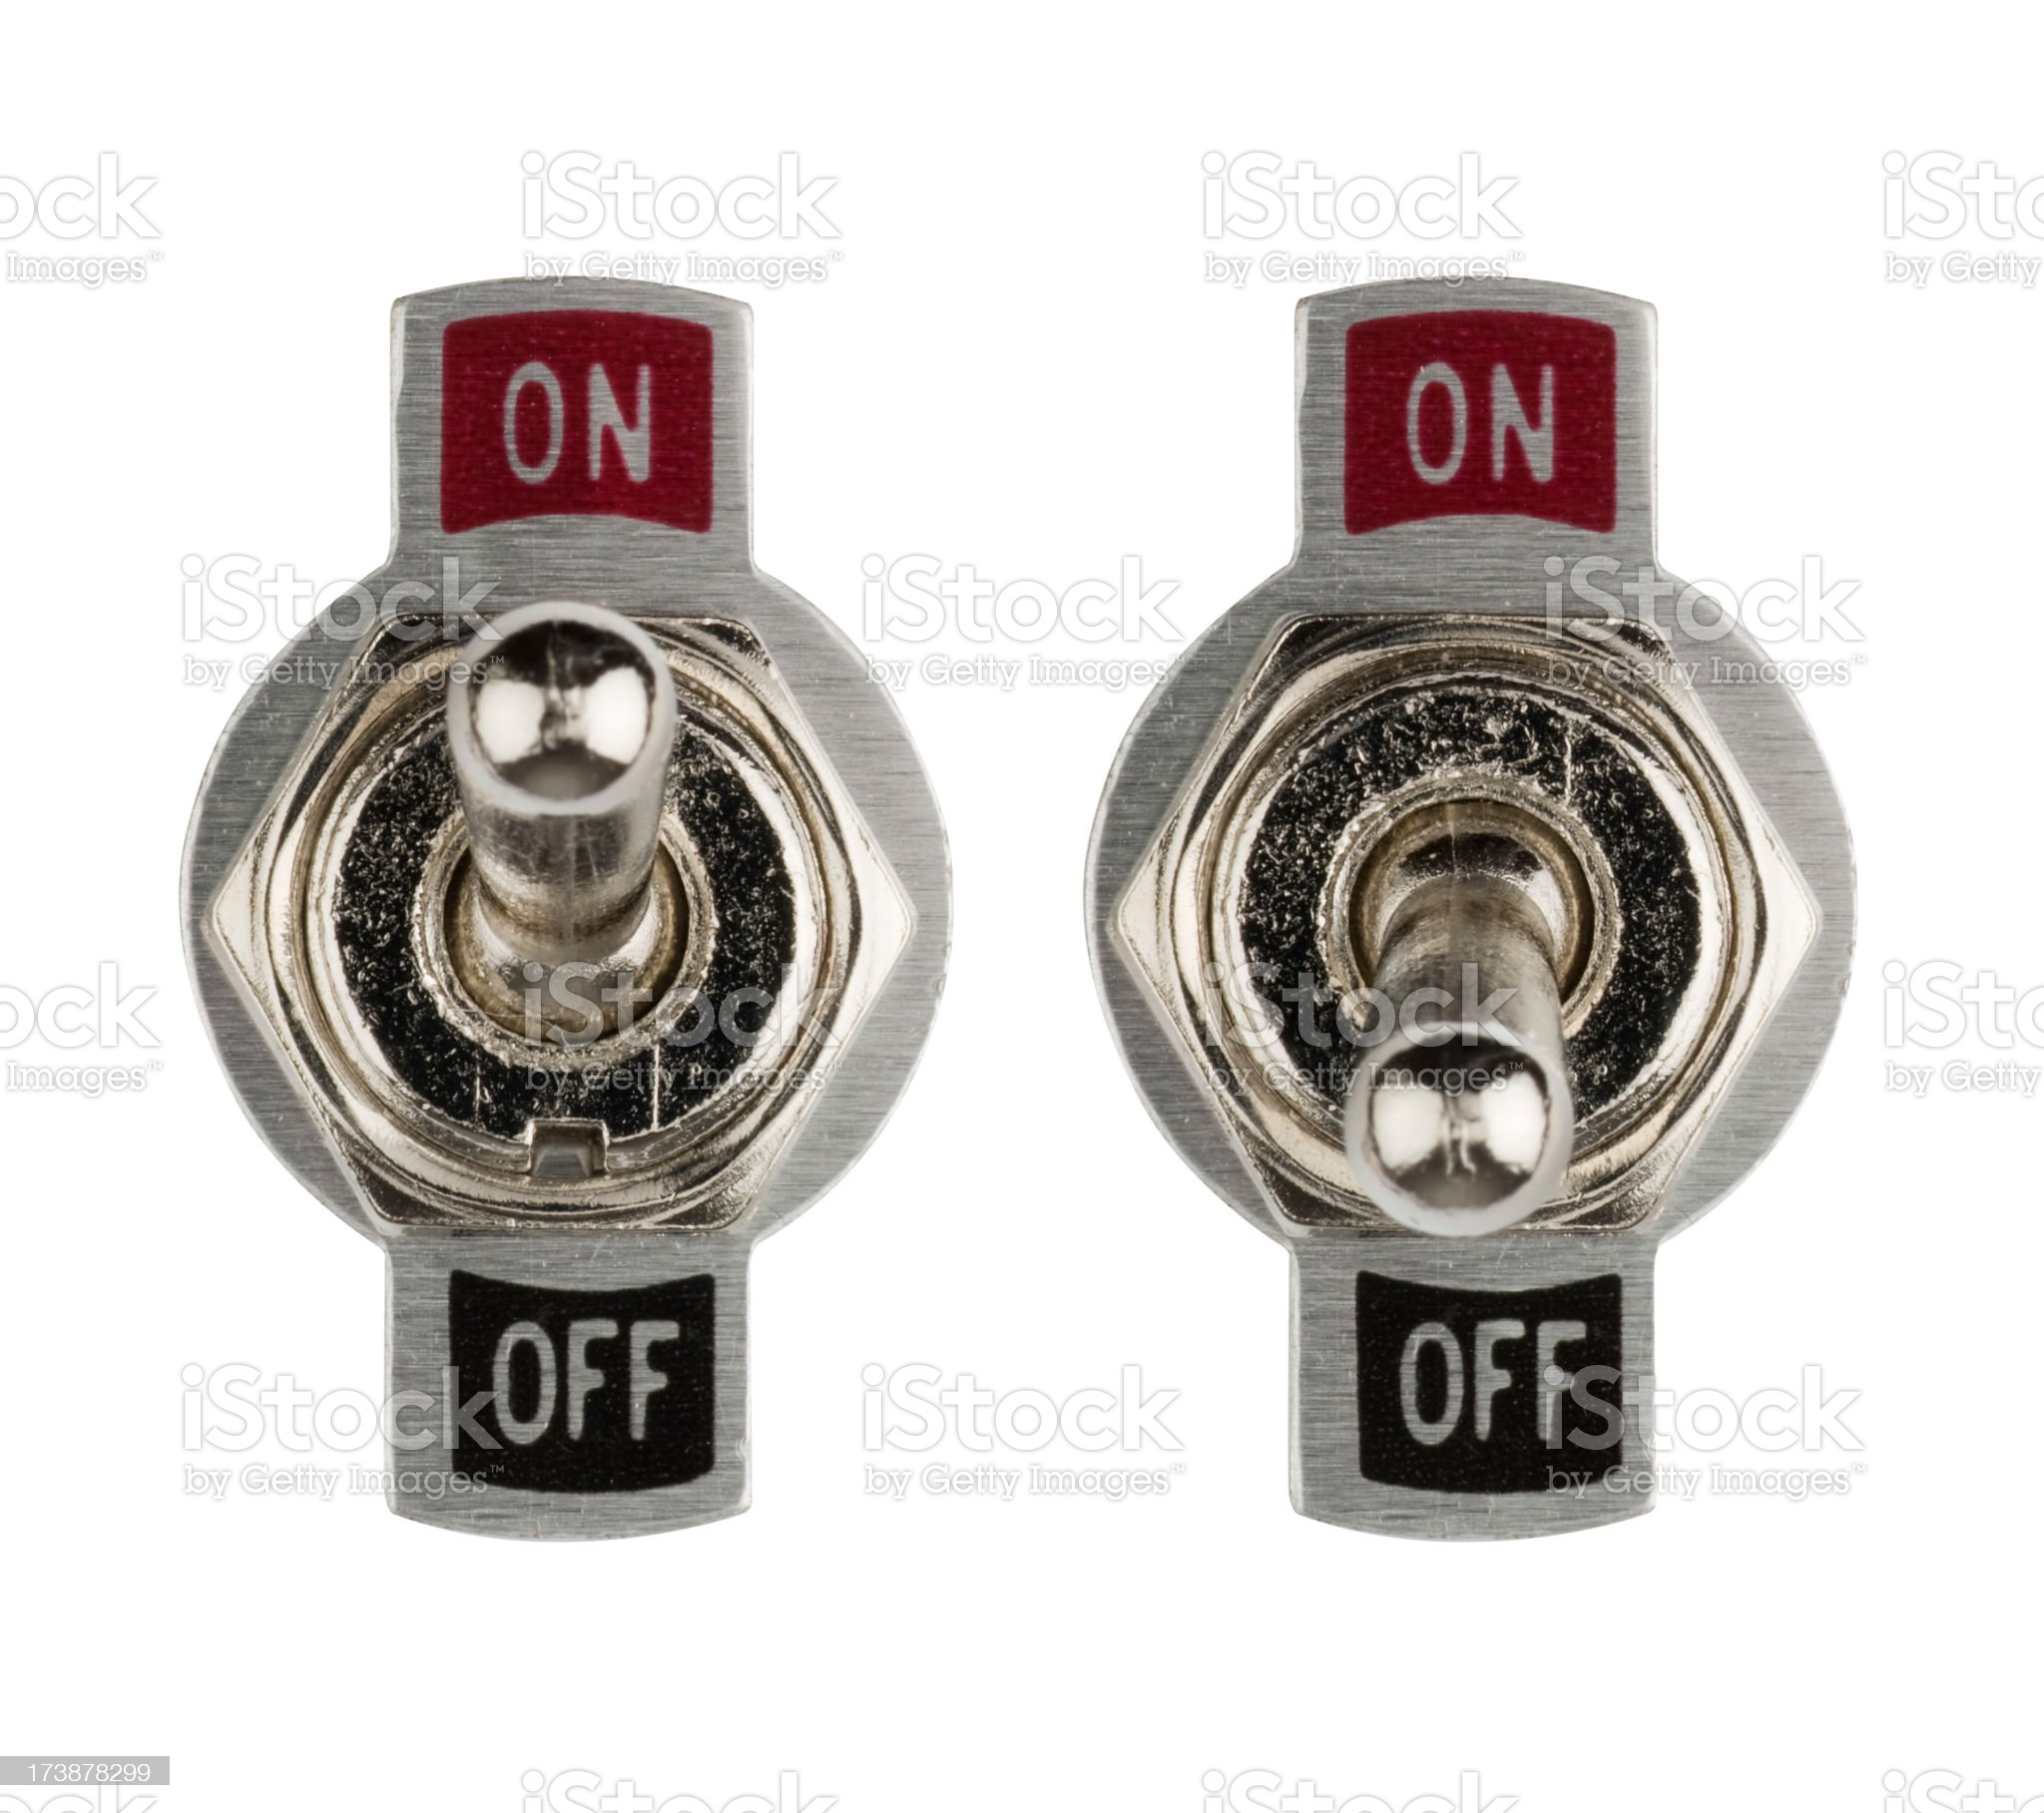 Set of chrome on/off flick switches royalty-free stock photo